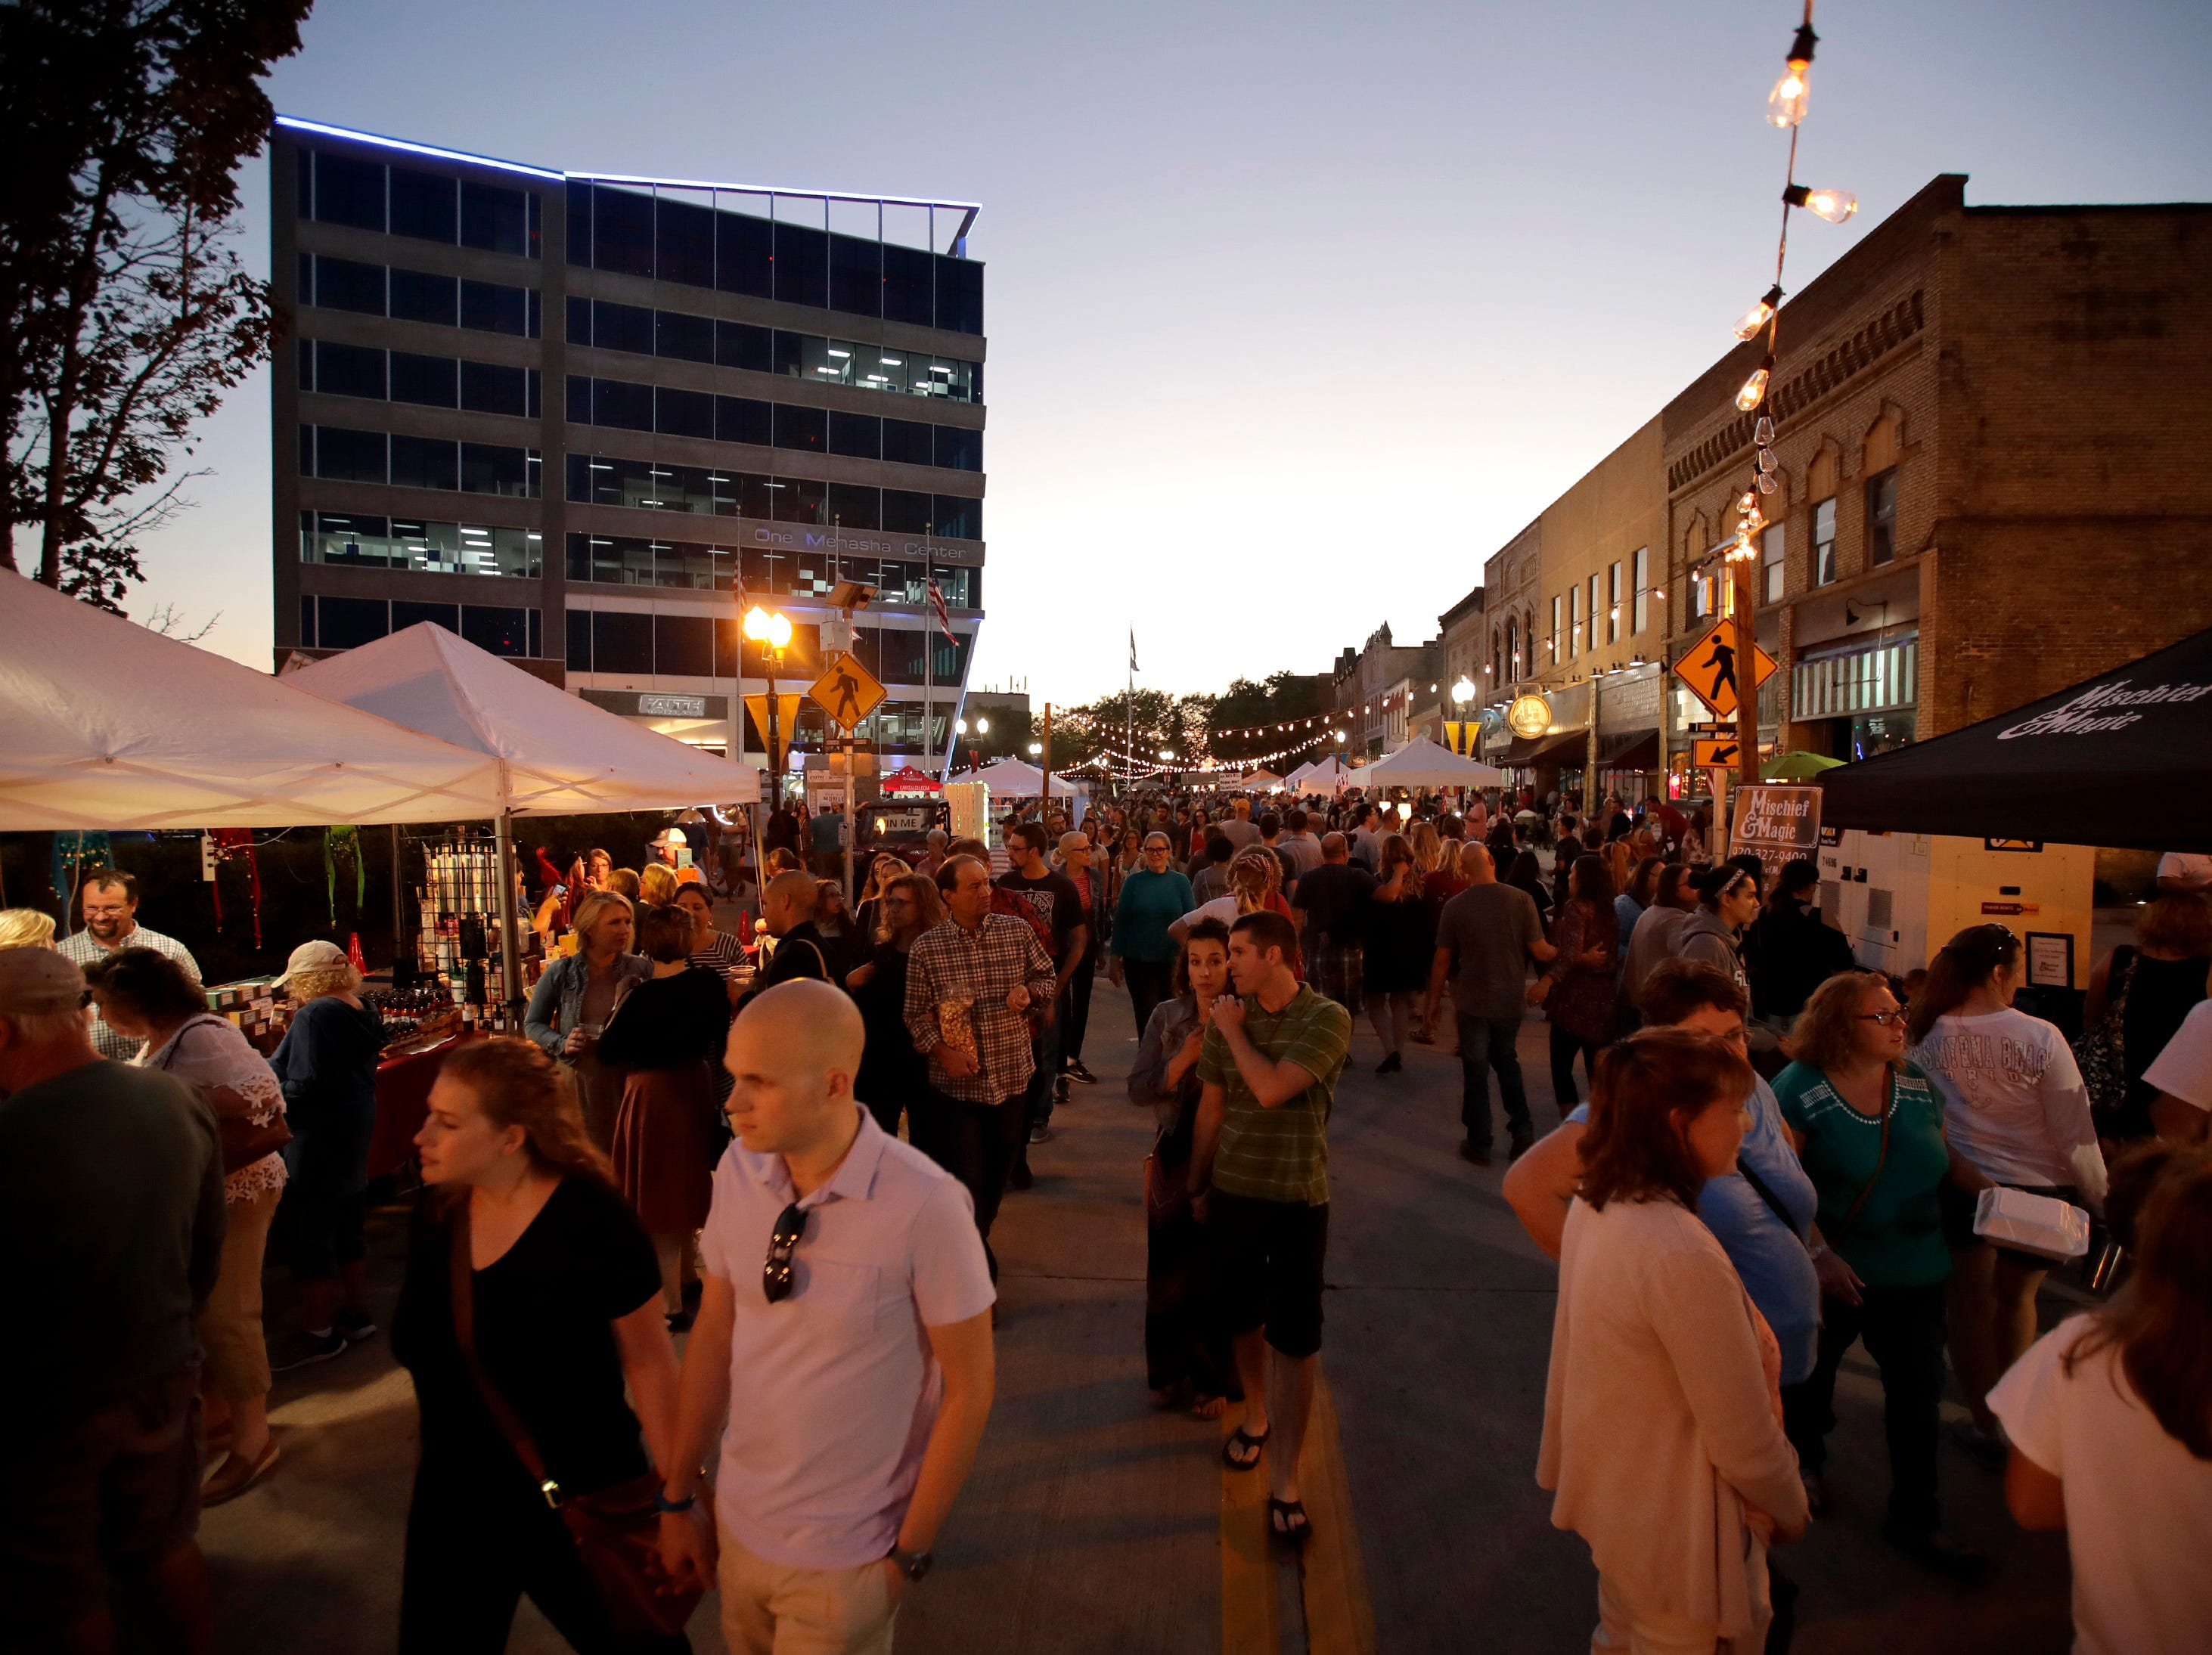 The crowd moves down Main Street during Bazaar After Dark Wednesday, Sept. 12, 2018, in Menasha, Wis.Danny Damiani/USA TODAY NETWORK-Wisconsin